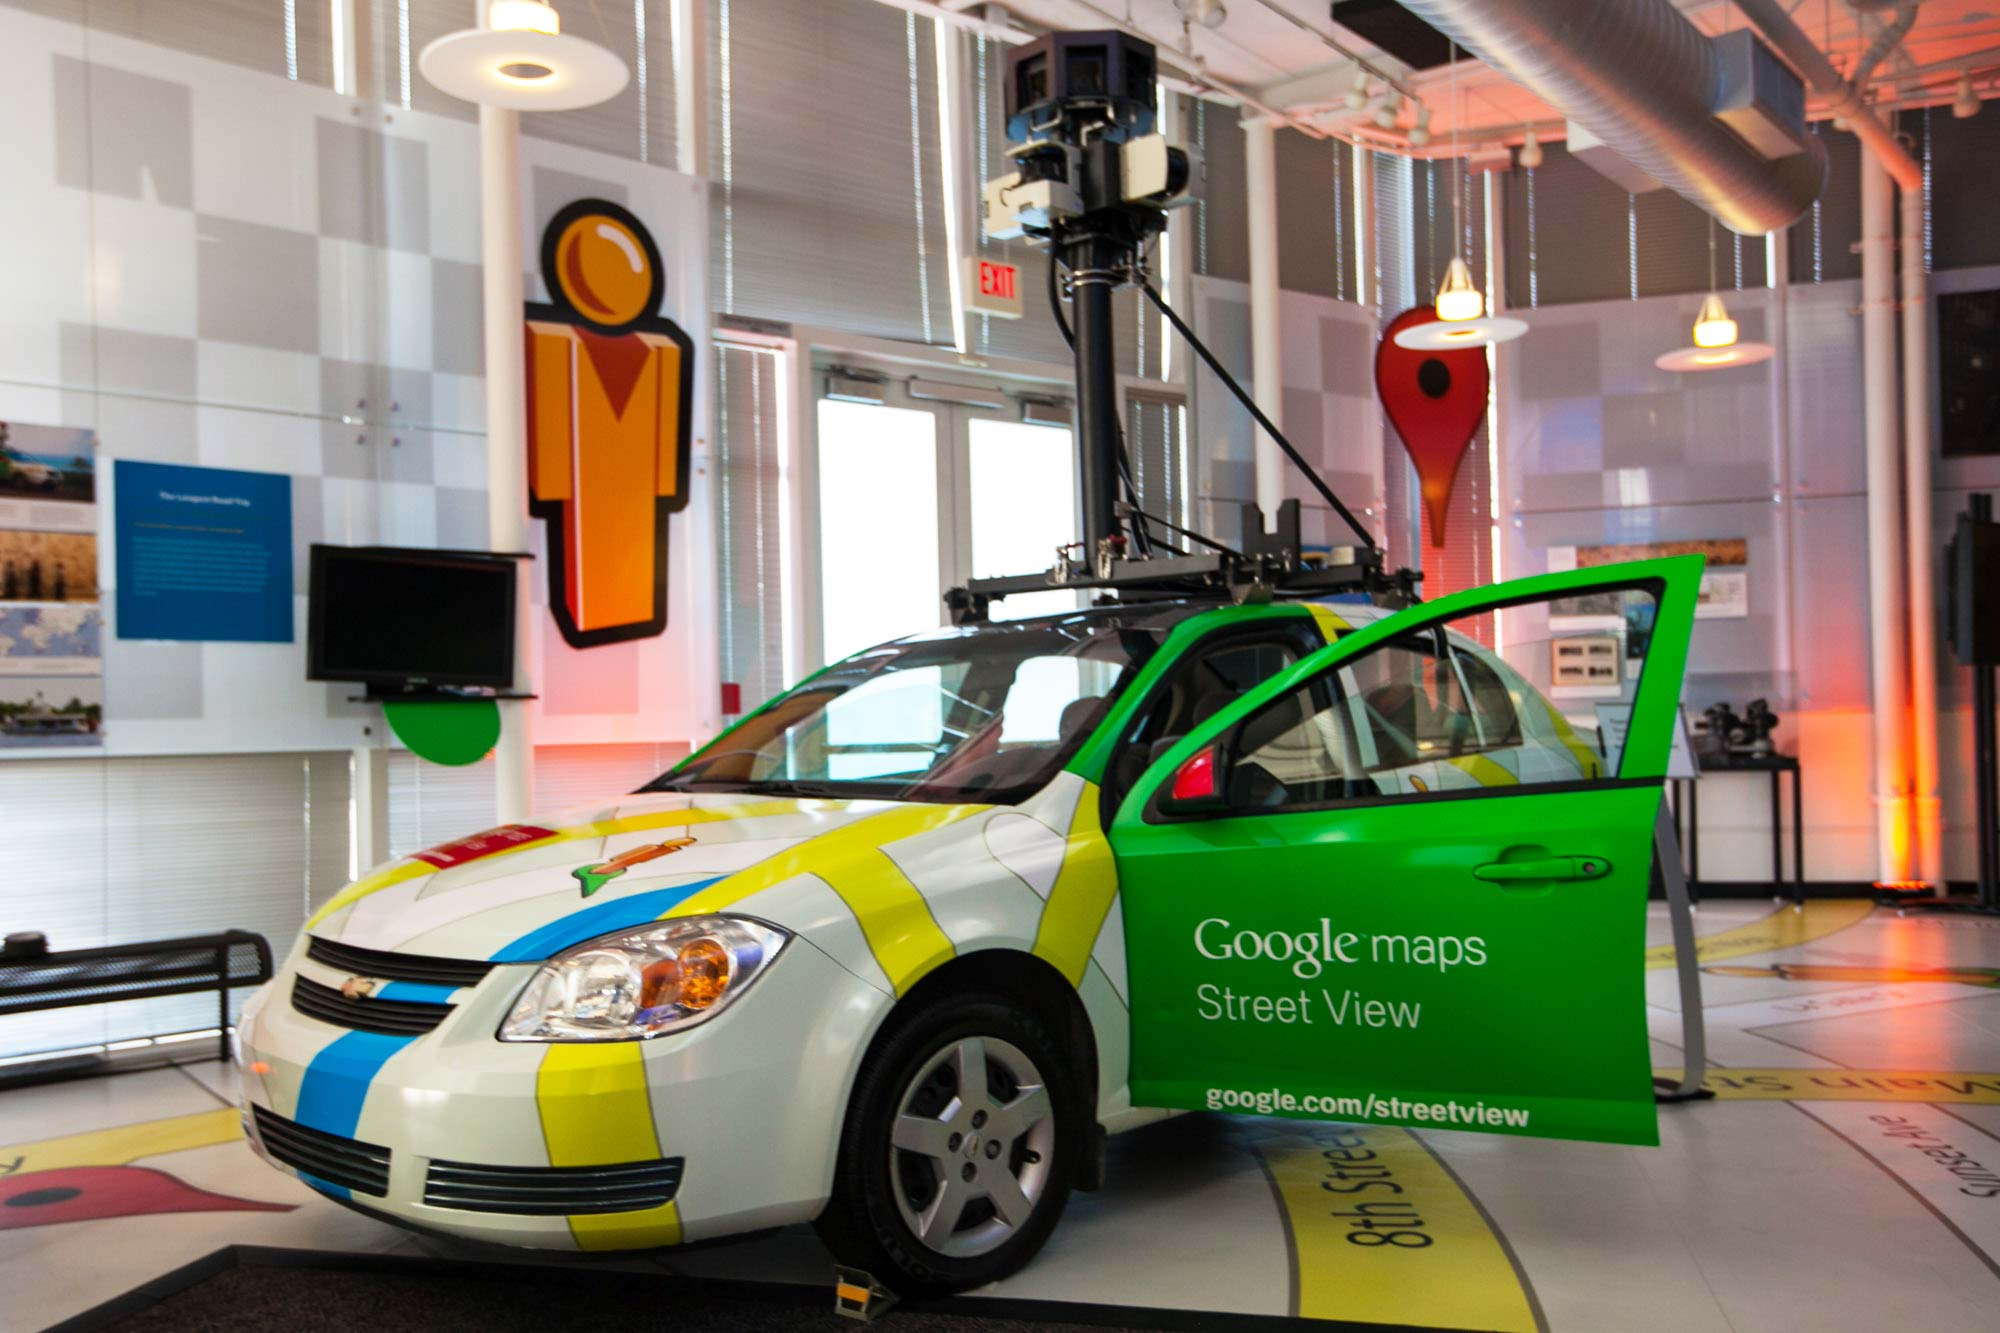 Google Street View car at Startup Grind 2014